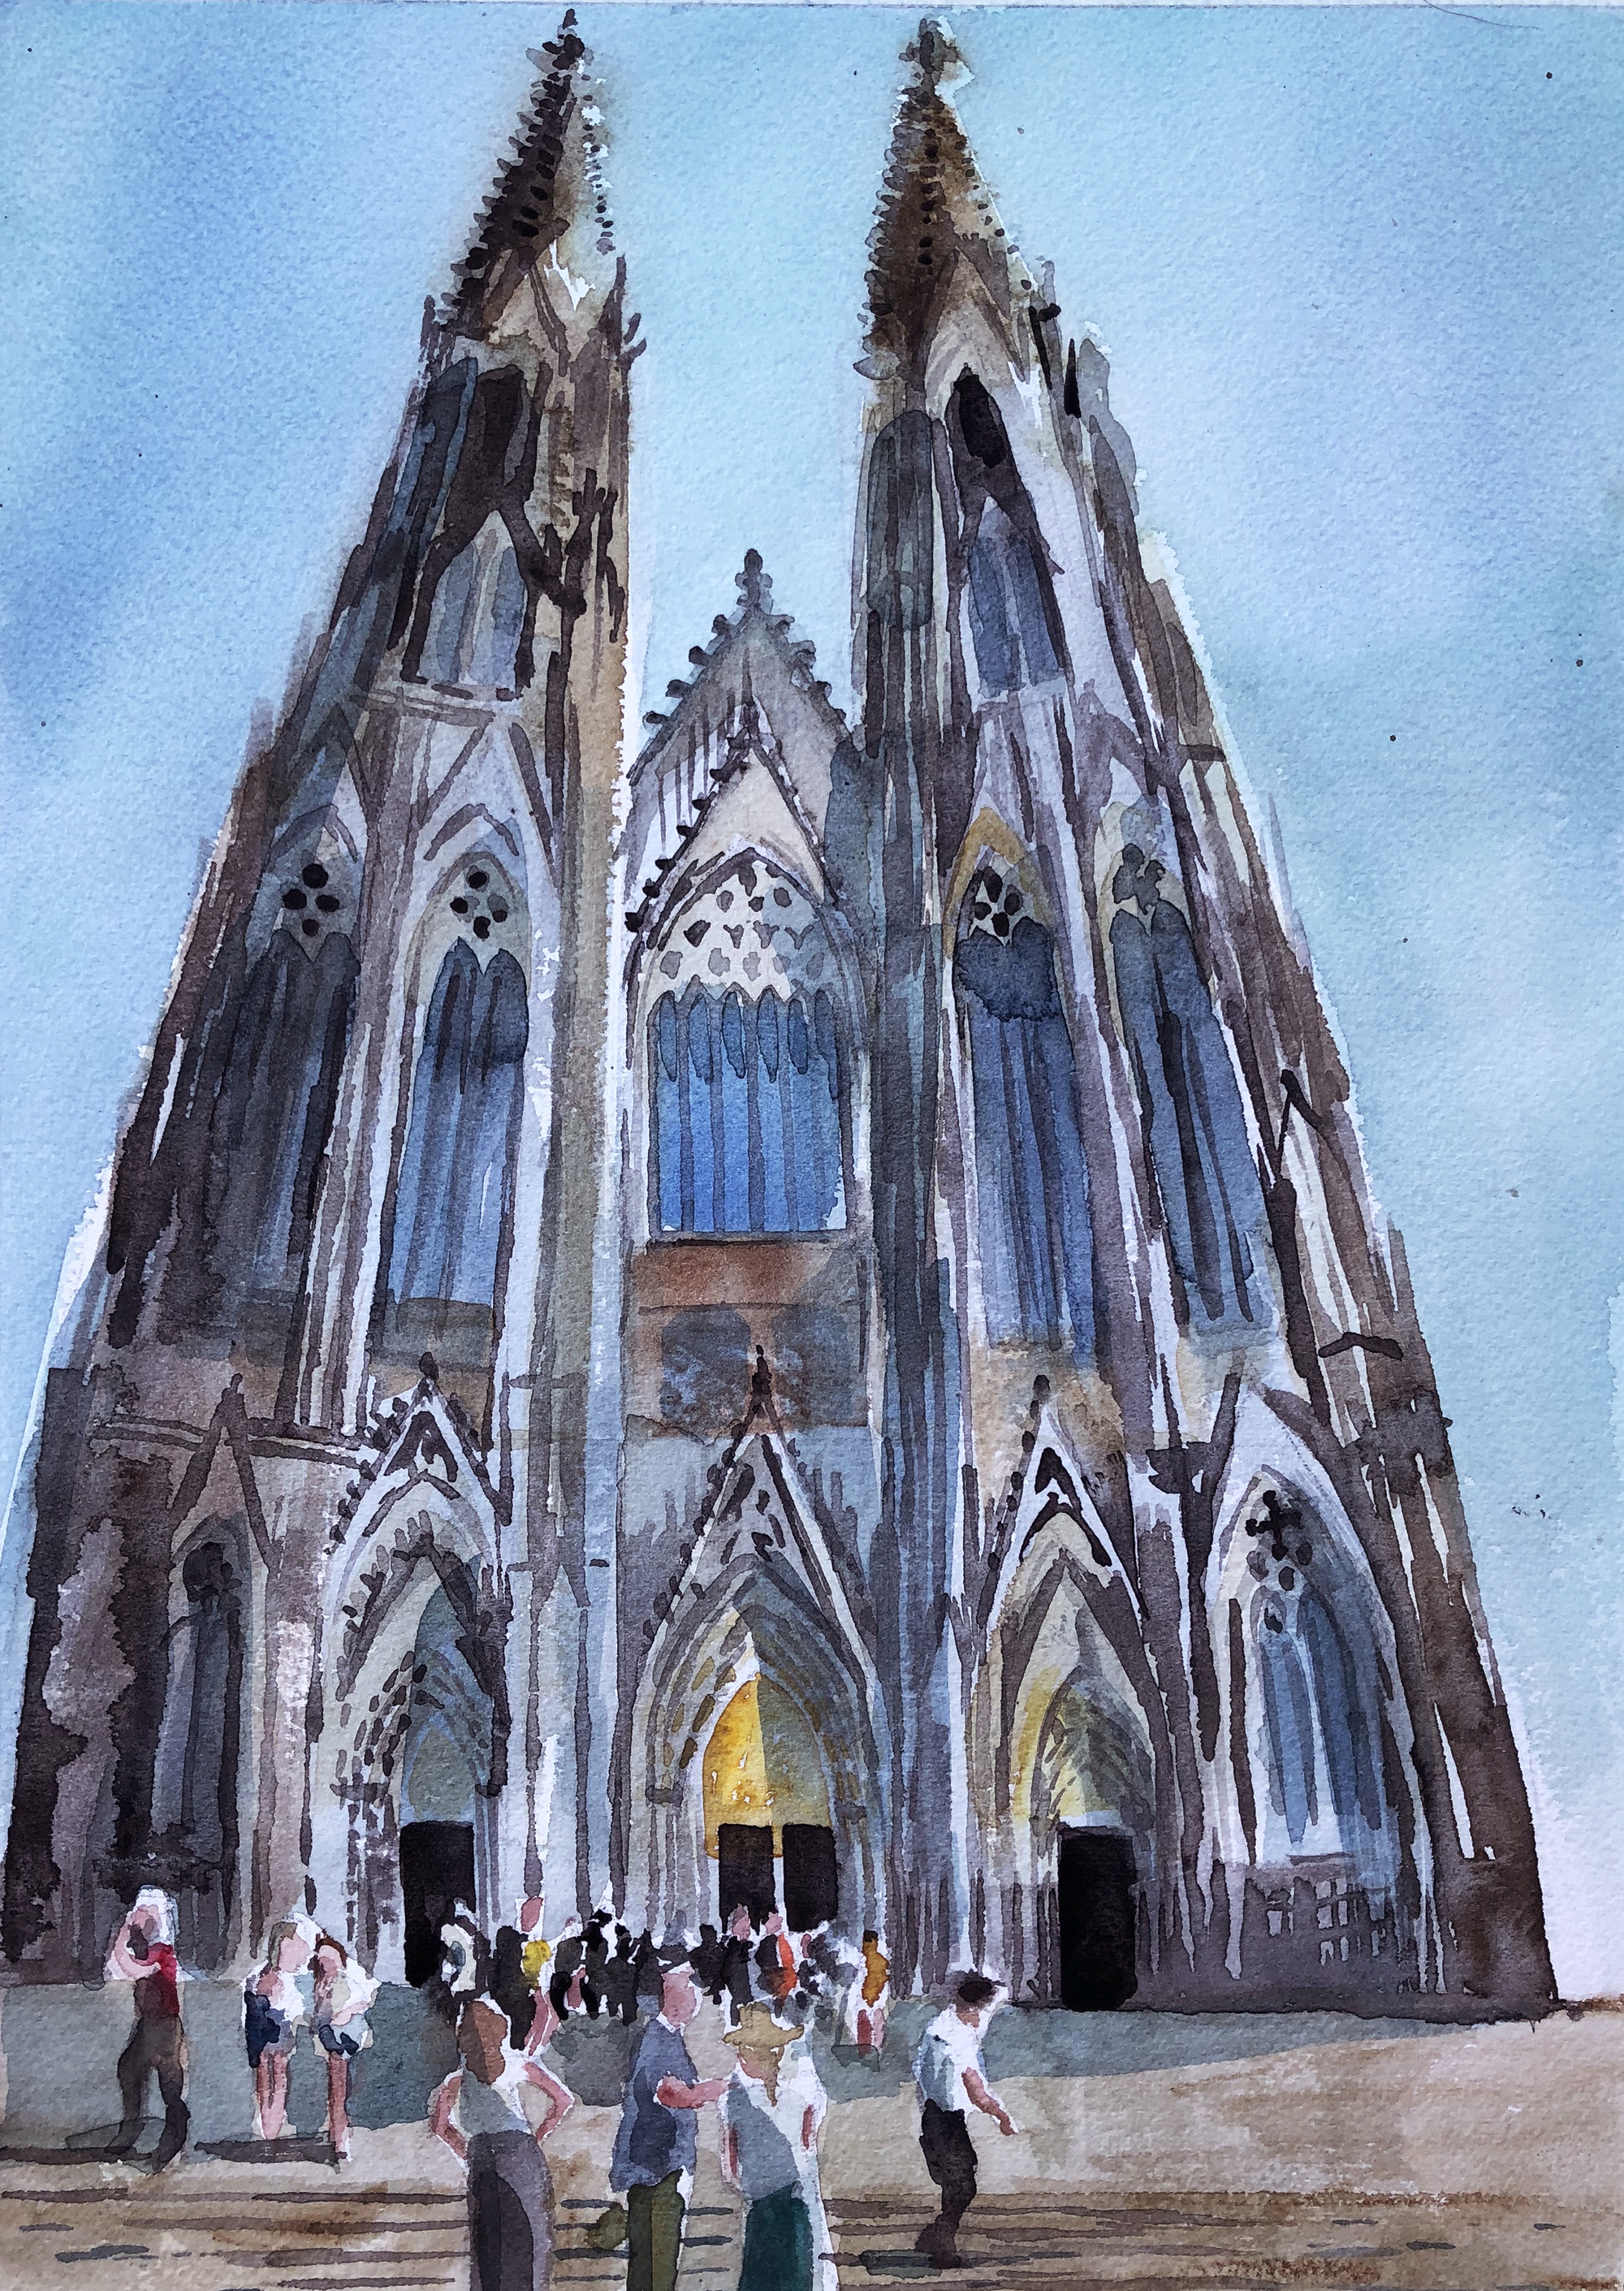 Watercolour painting of Cologne cathedral by Leanne Talbot Nowell